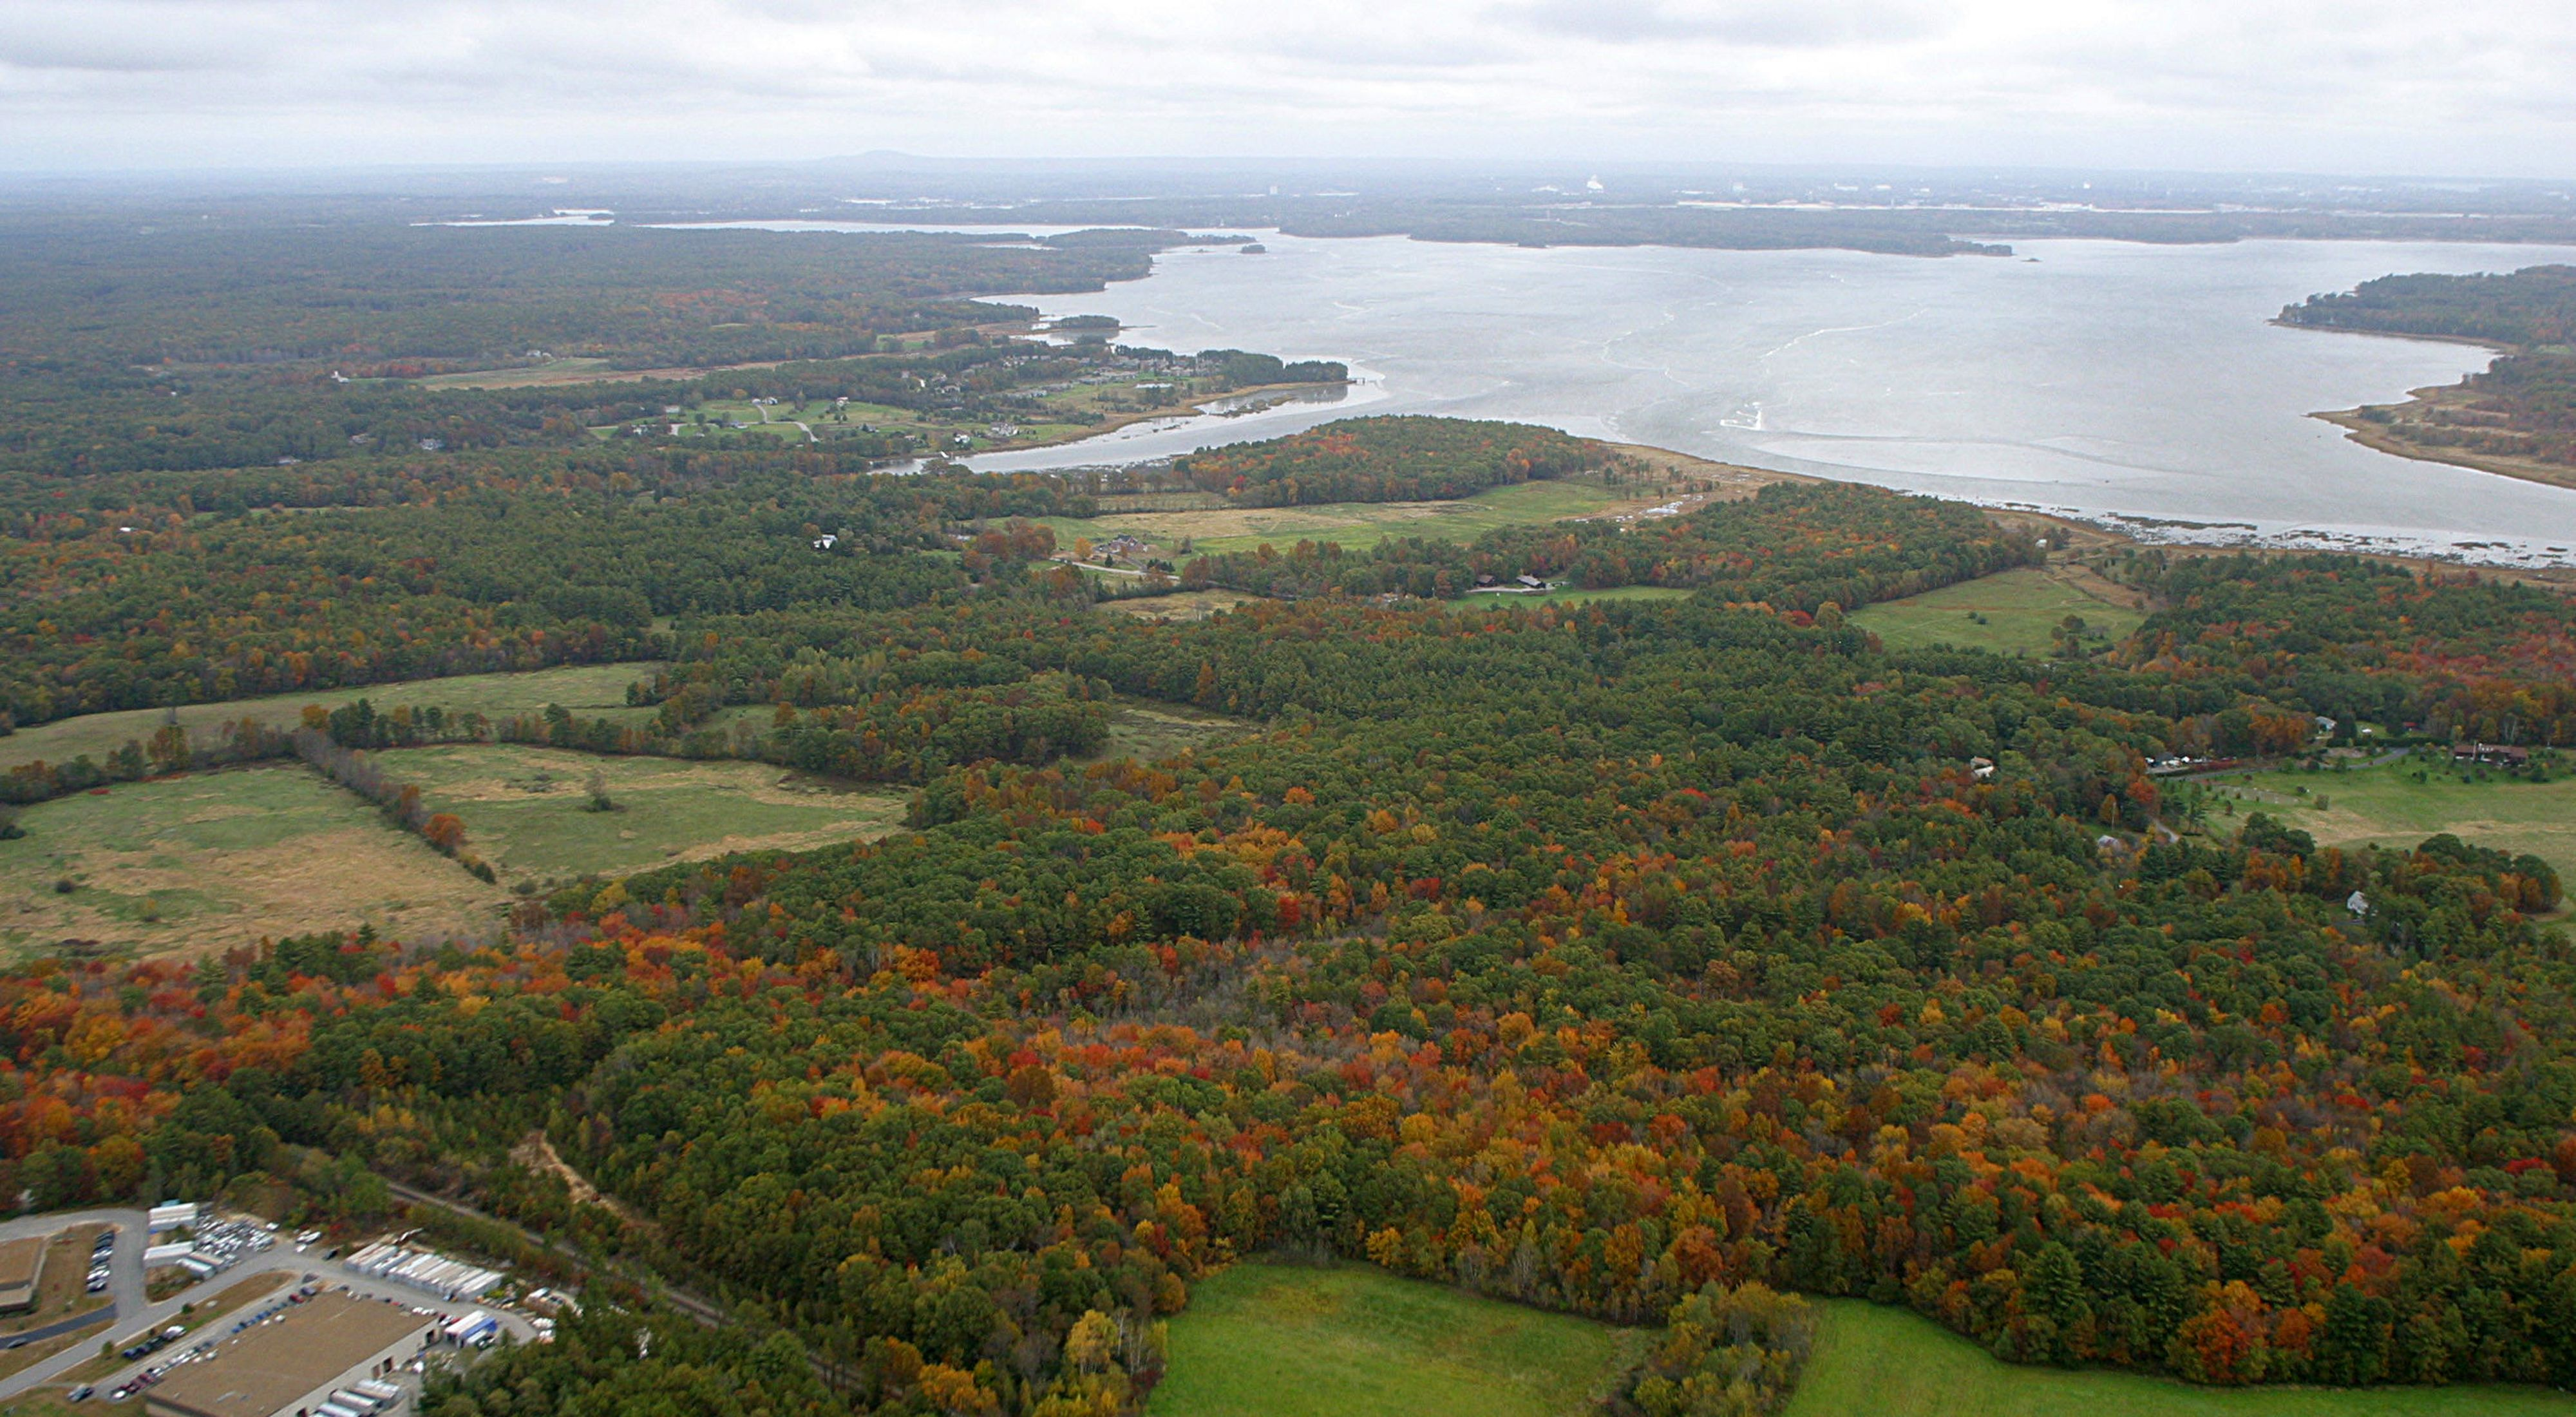 View from a plane looking out over an estuary in the background with trees just starting to show fall colors in the foreground.